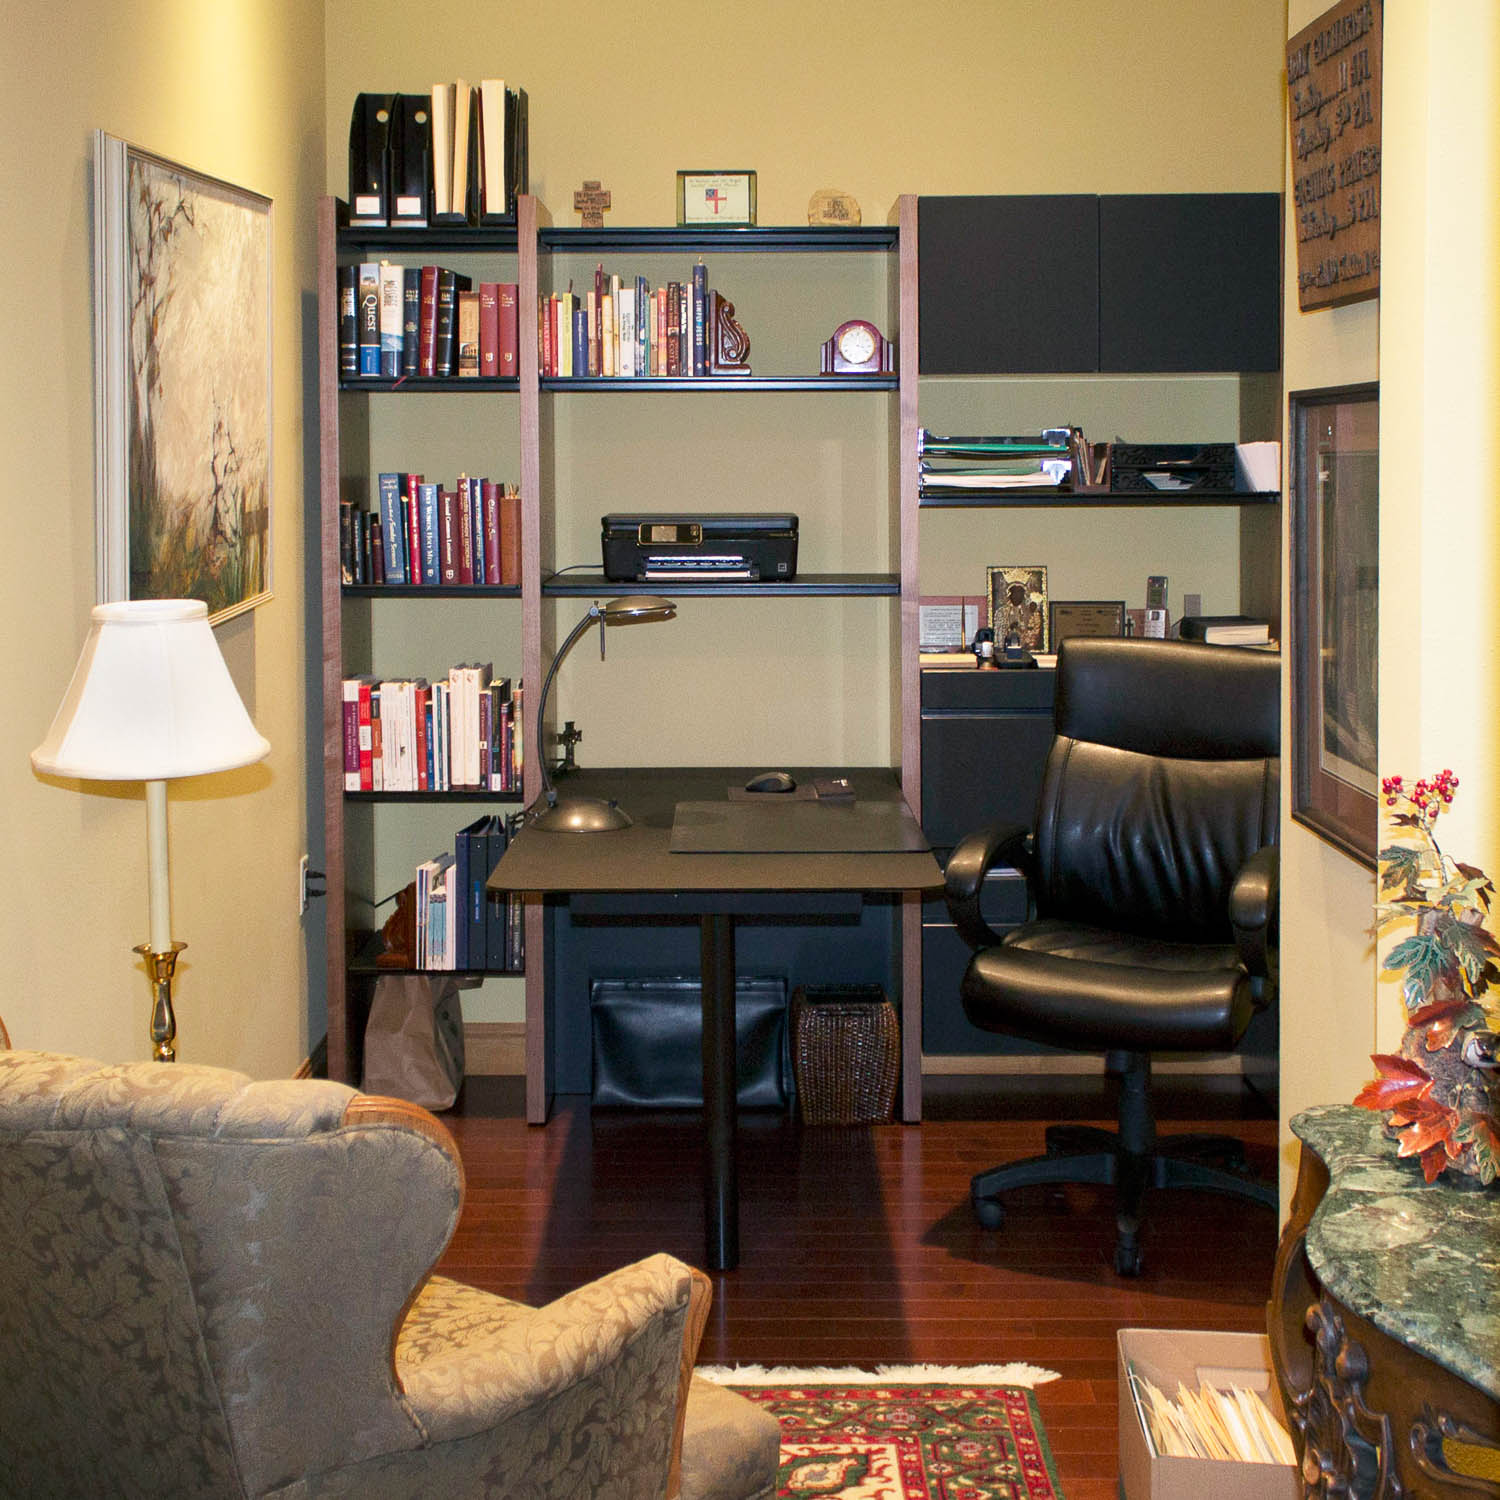 - This nook office resides just off the foyer. Click through to the project page for a video tour explaining how we created a home office space in this condo.